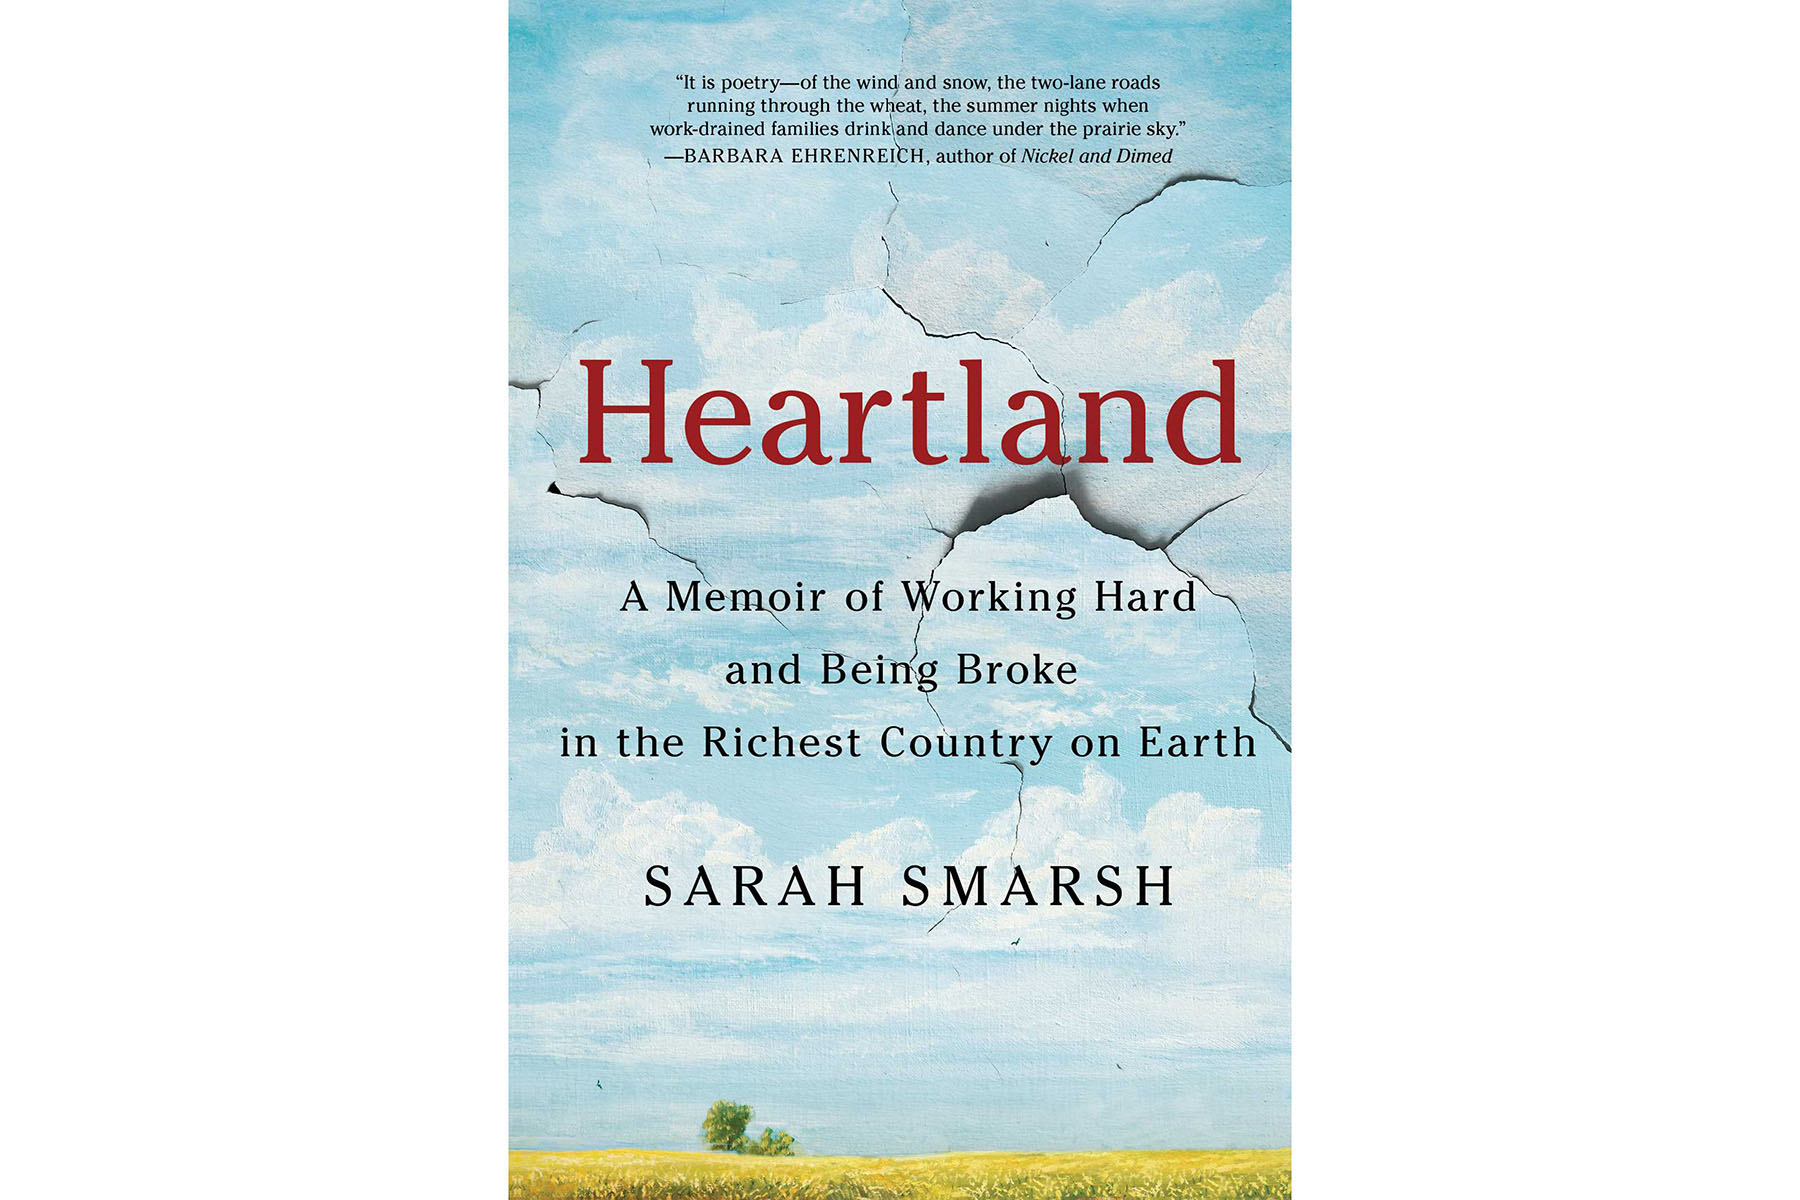 Discussion Books Heartland: A Memoir of Working Hard and Being Broke in the Richest Country on Earth, by Sarah Smarsh